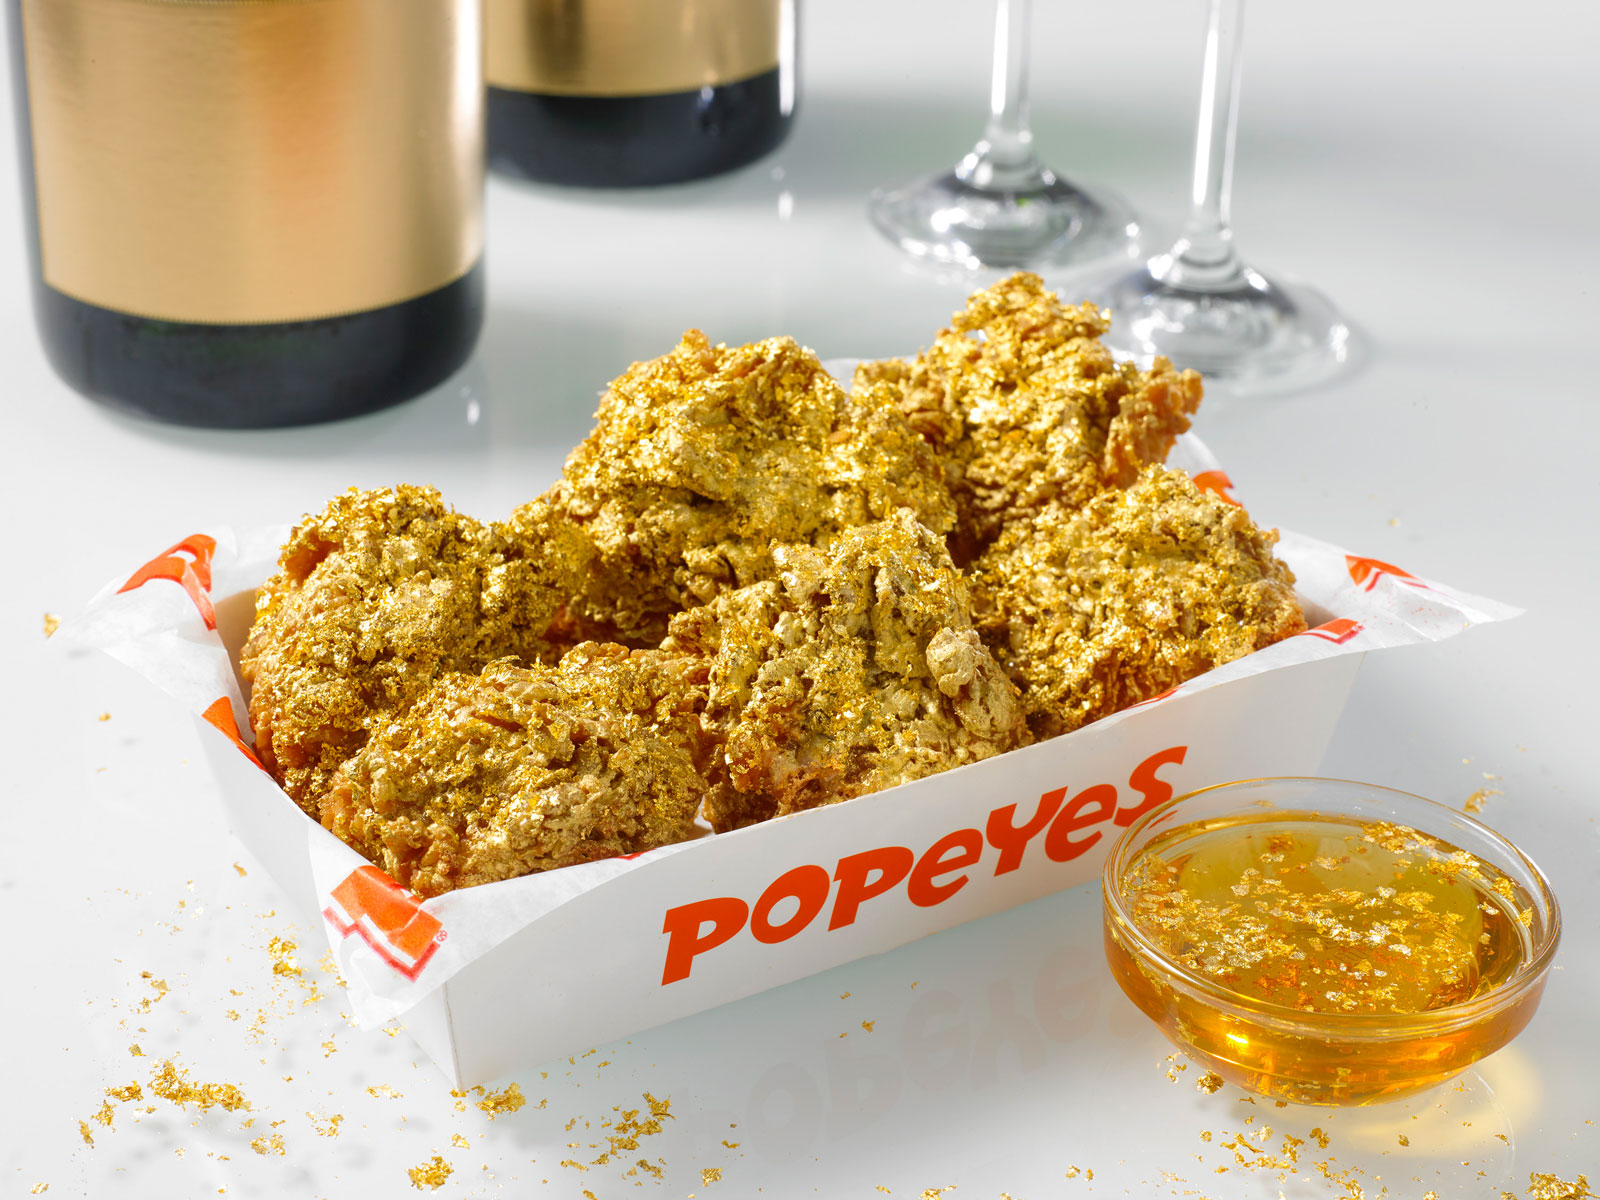 Popeyes Puts 24-Karat Gold Chicken Wings on the Menu for One Day Only